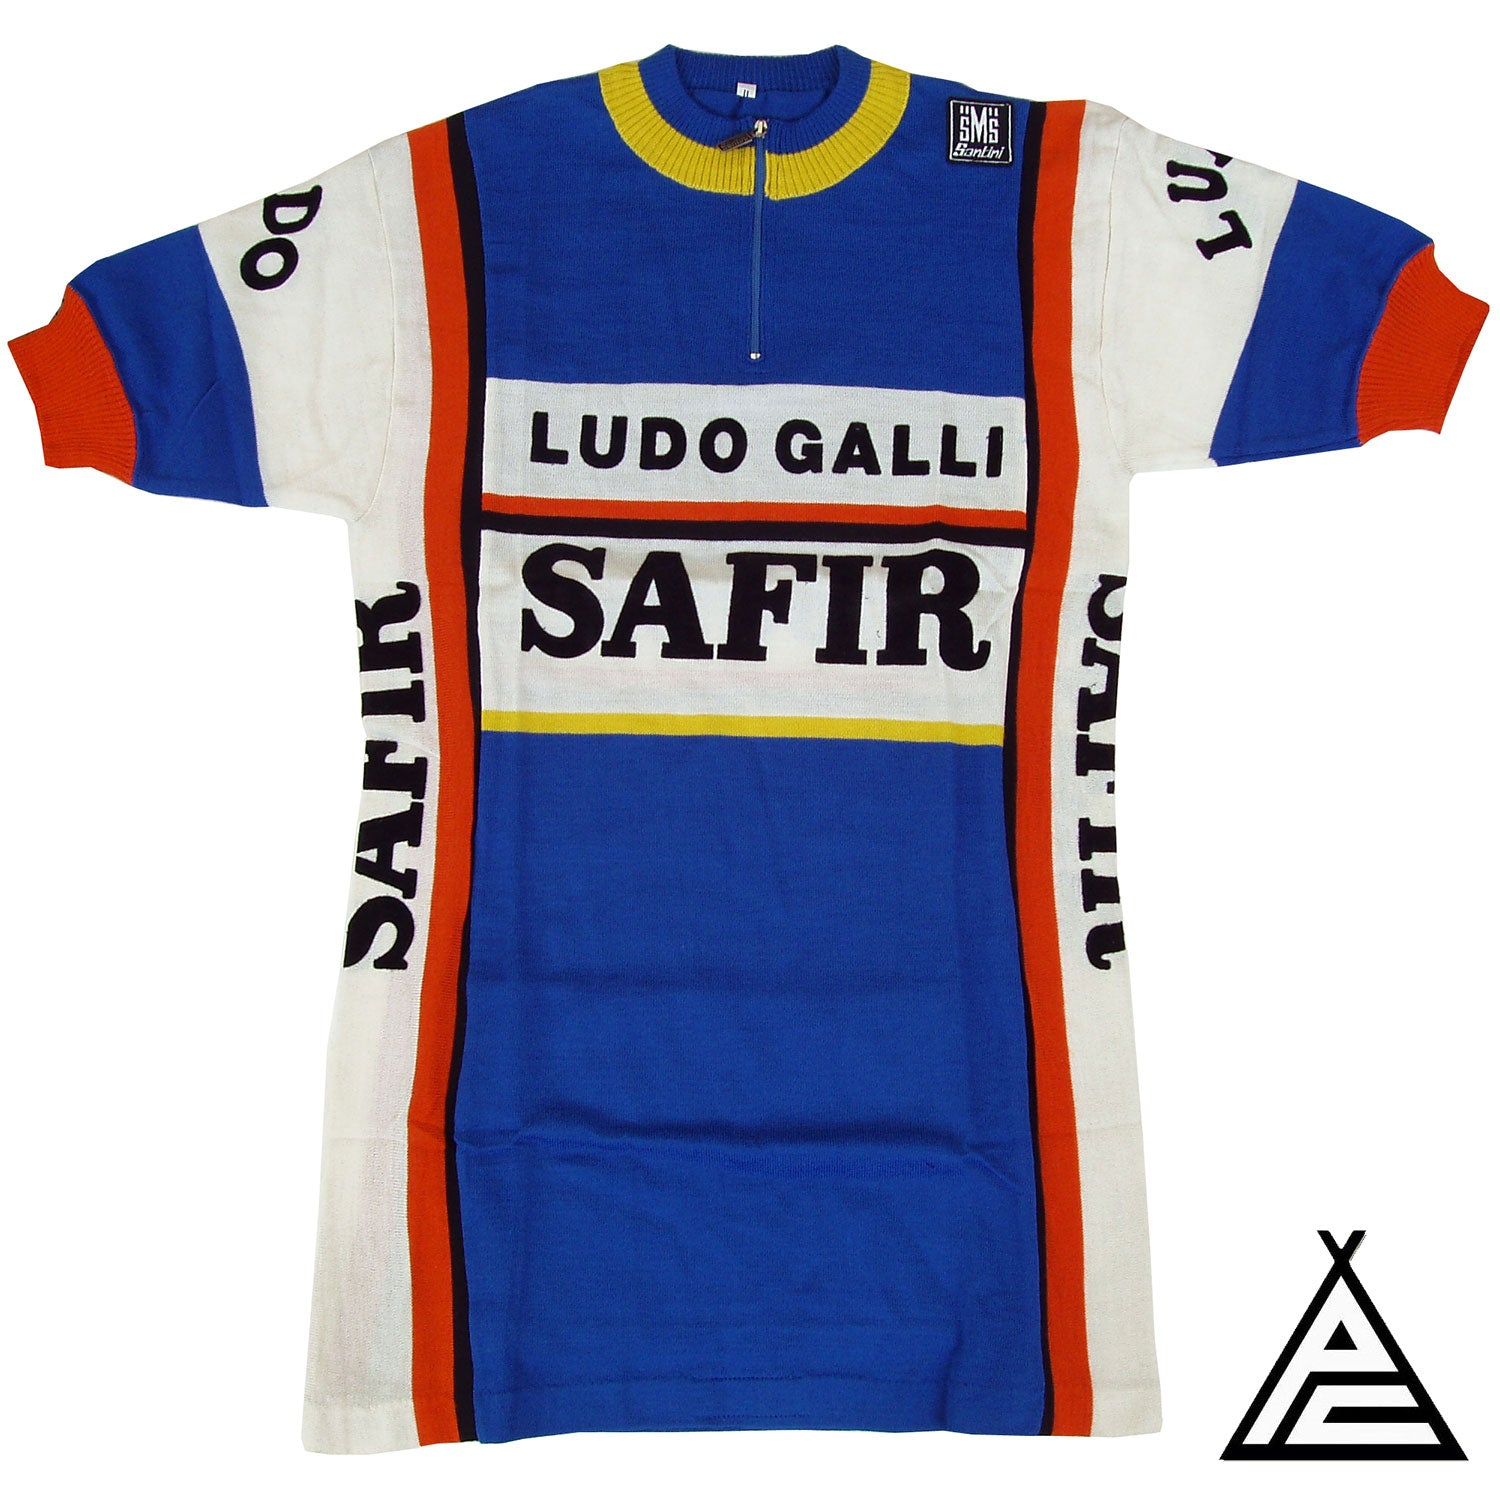 Safir Ludo Galli 1981 Wool Team Jersey